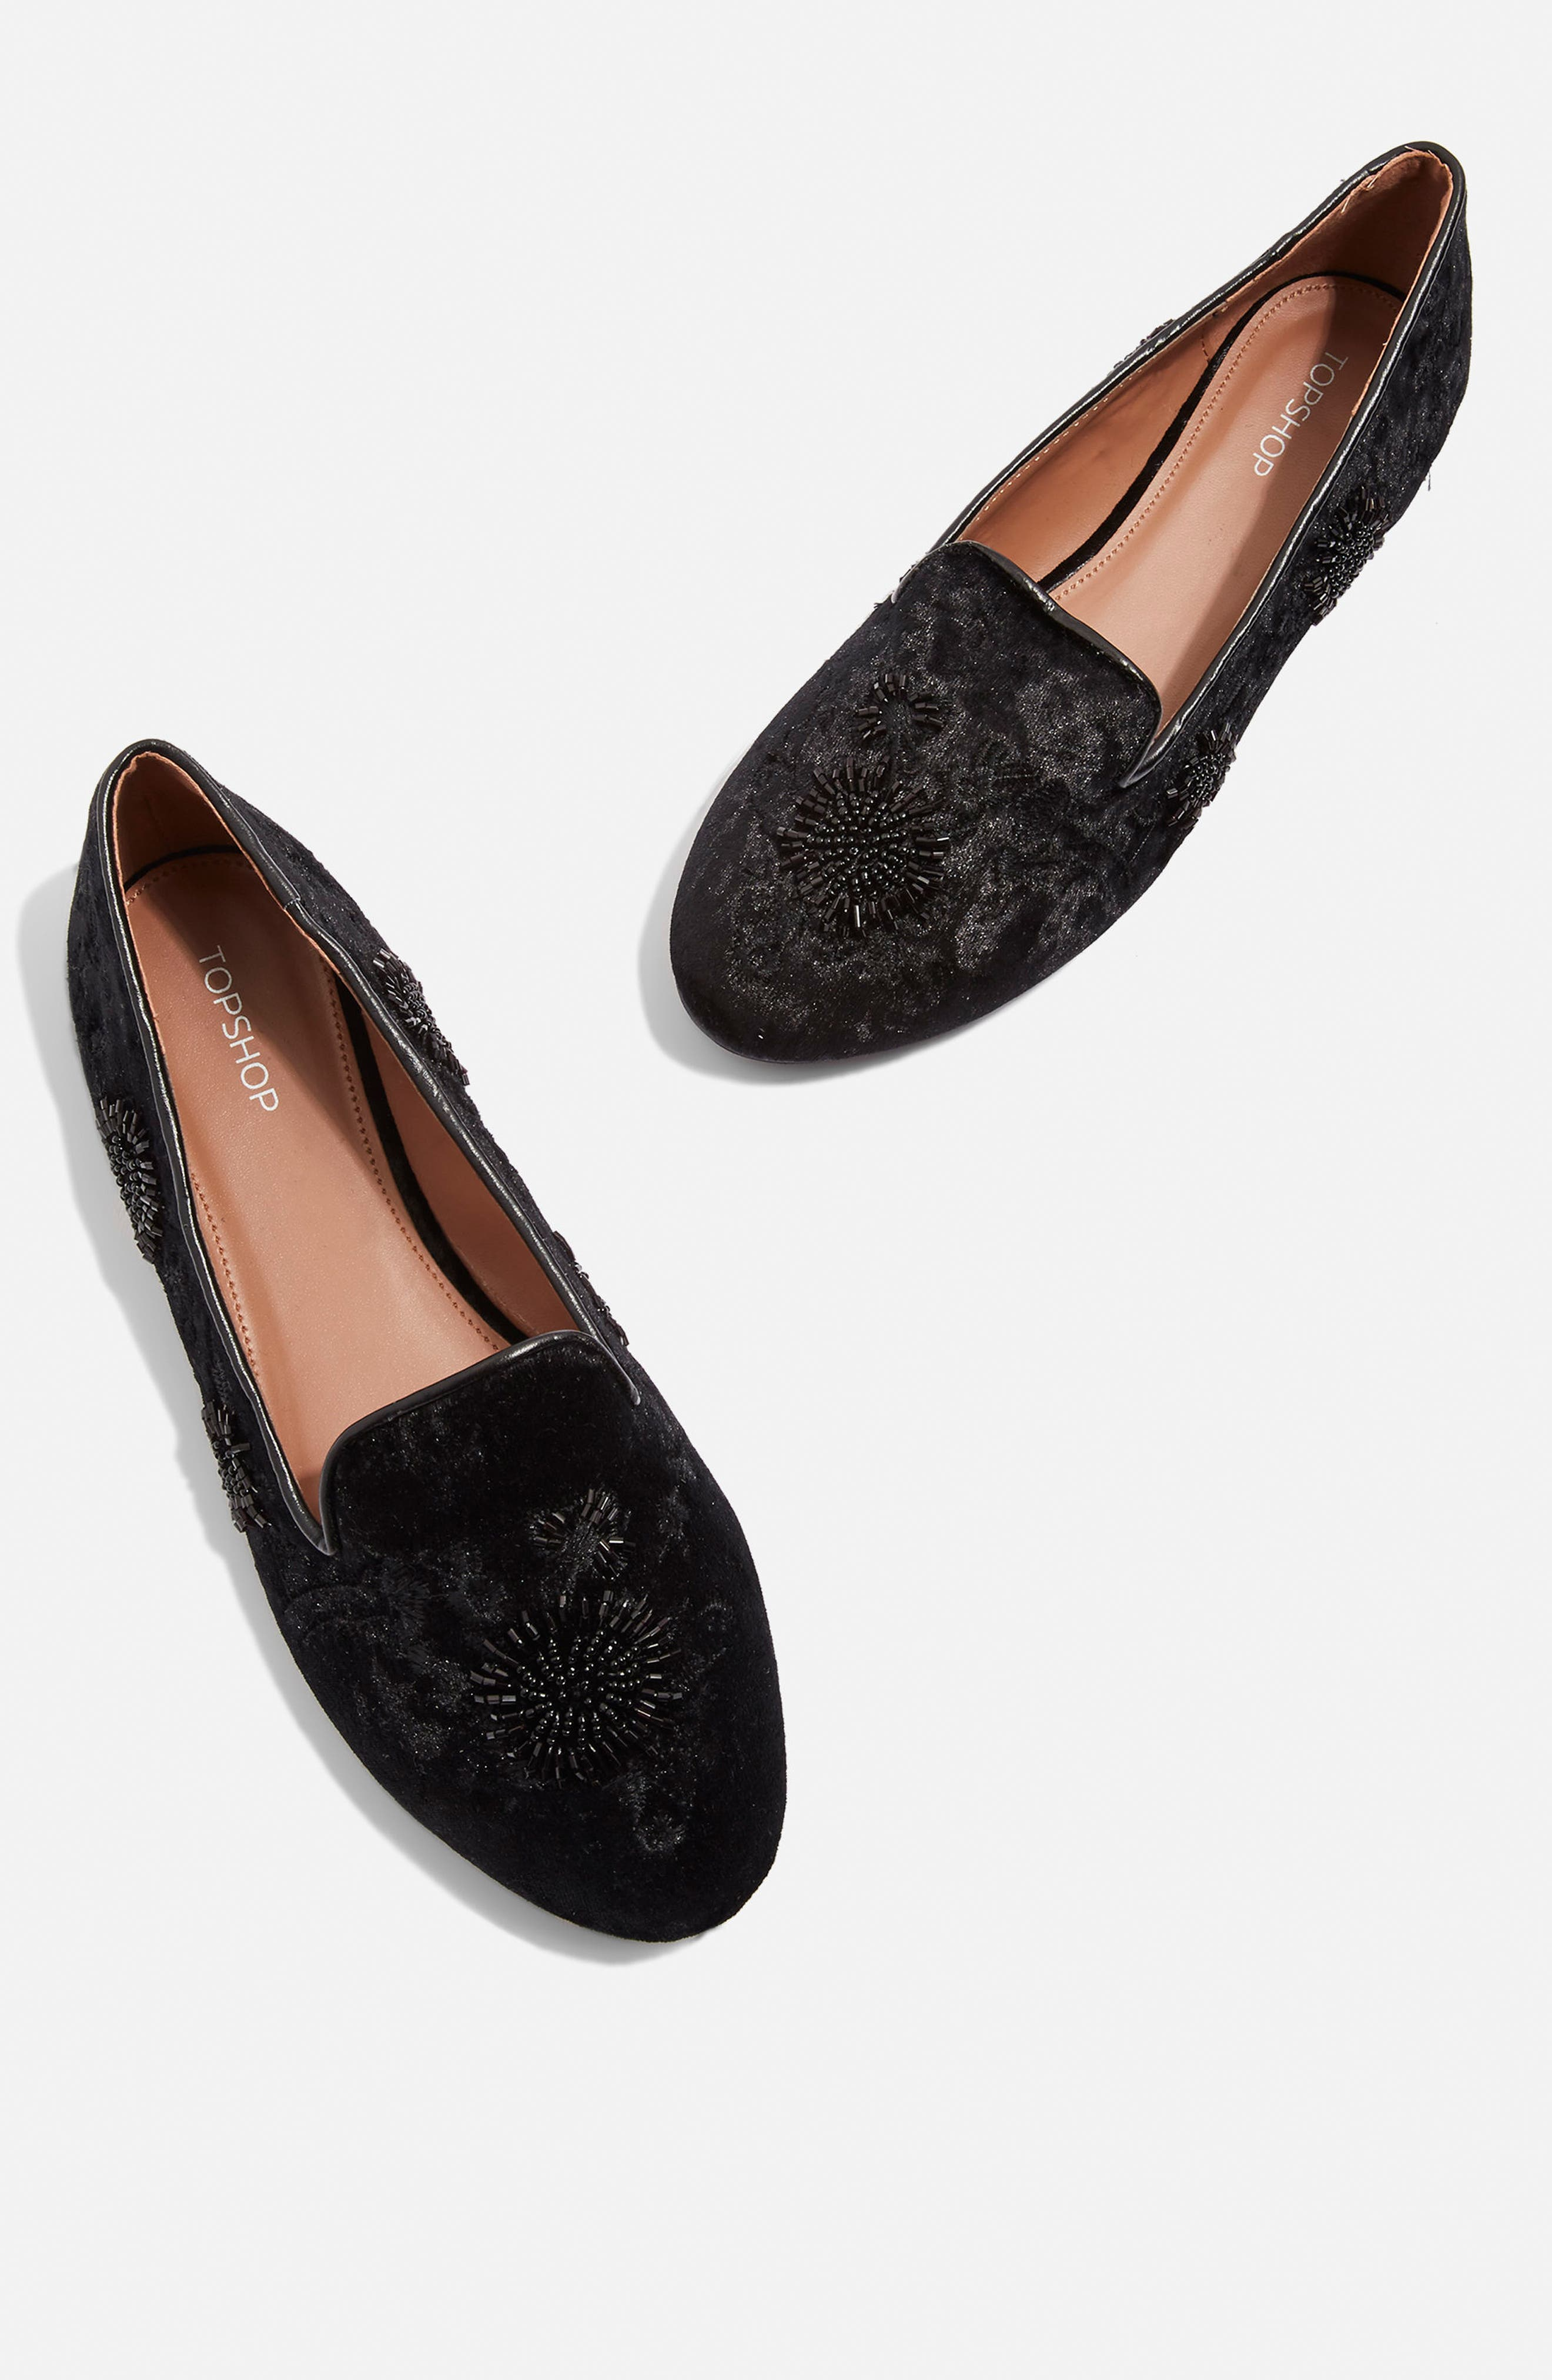 Syrup Embellished Loafer,                             Alternate thumbnail 8, color,                             Black